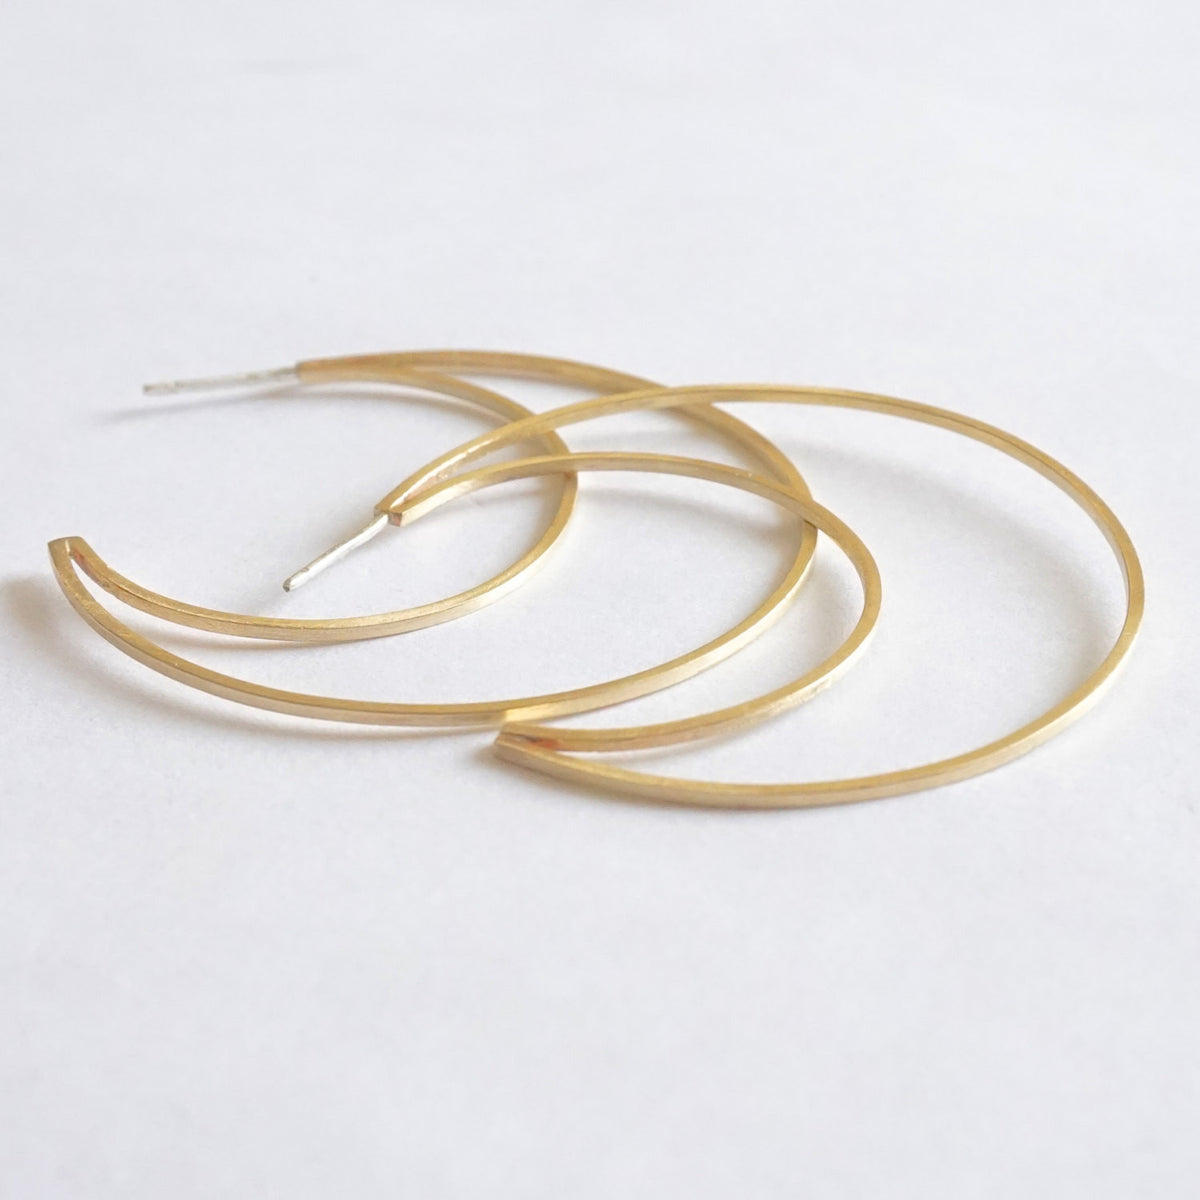 Contemporary, Hand-Crafted, Open Flat Crescent Hoop Earrings With Brushed Finish in Copper, Brass, Sterling Silver, 14K Gold or 14K Rose Gold - 0261 - Virginia Wynne Designs